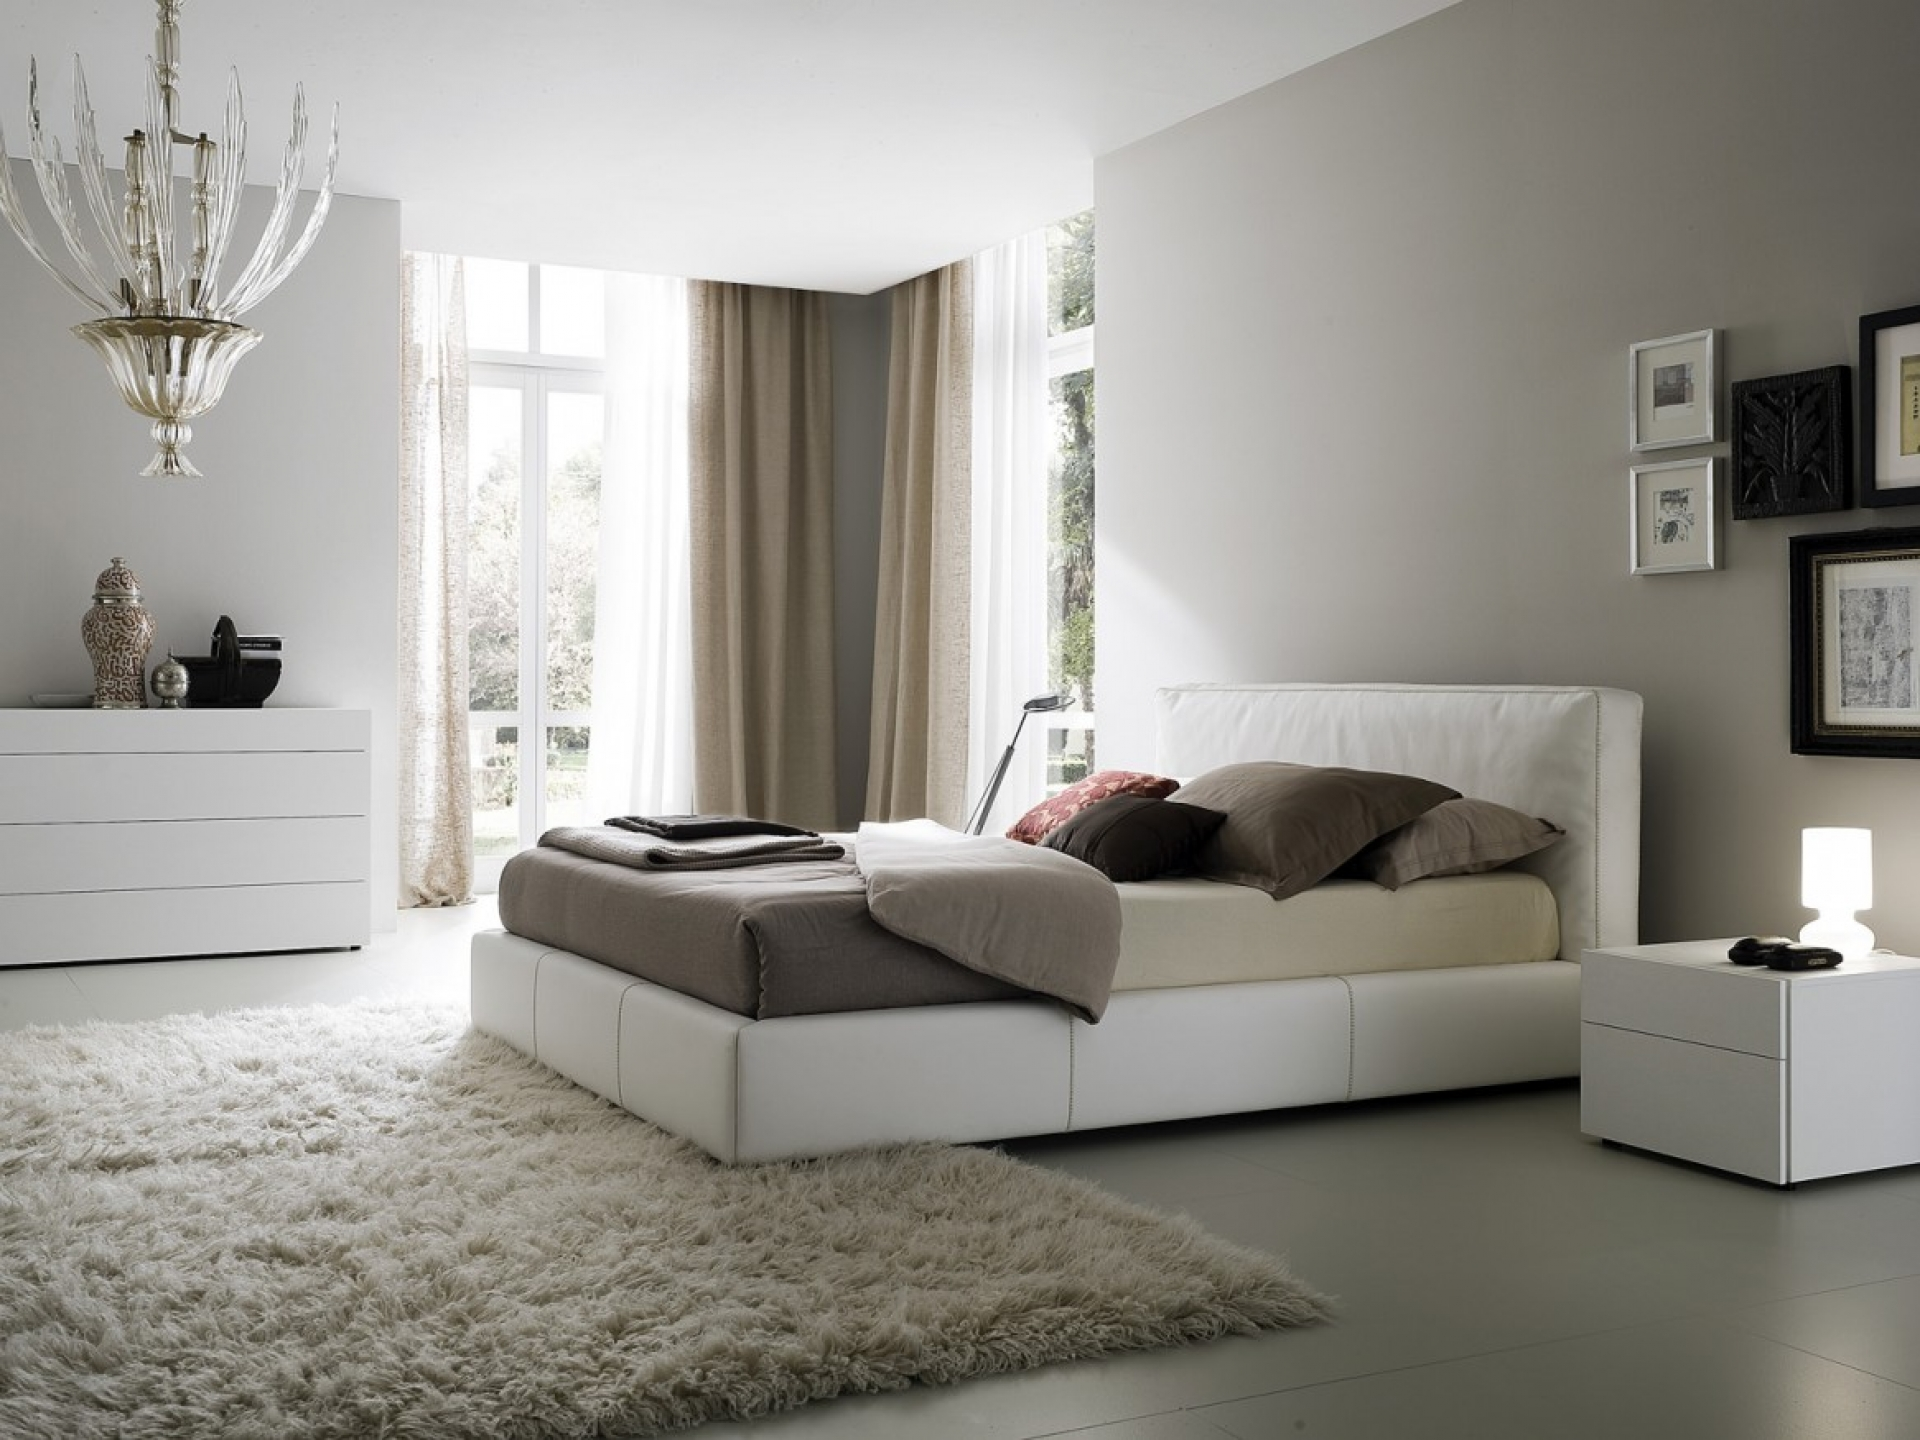 bedroom ideas using ikea furniture photo - 4